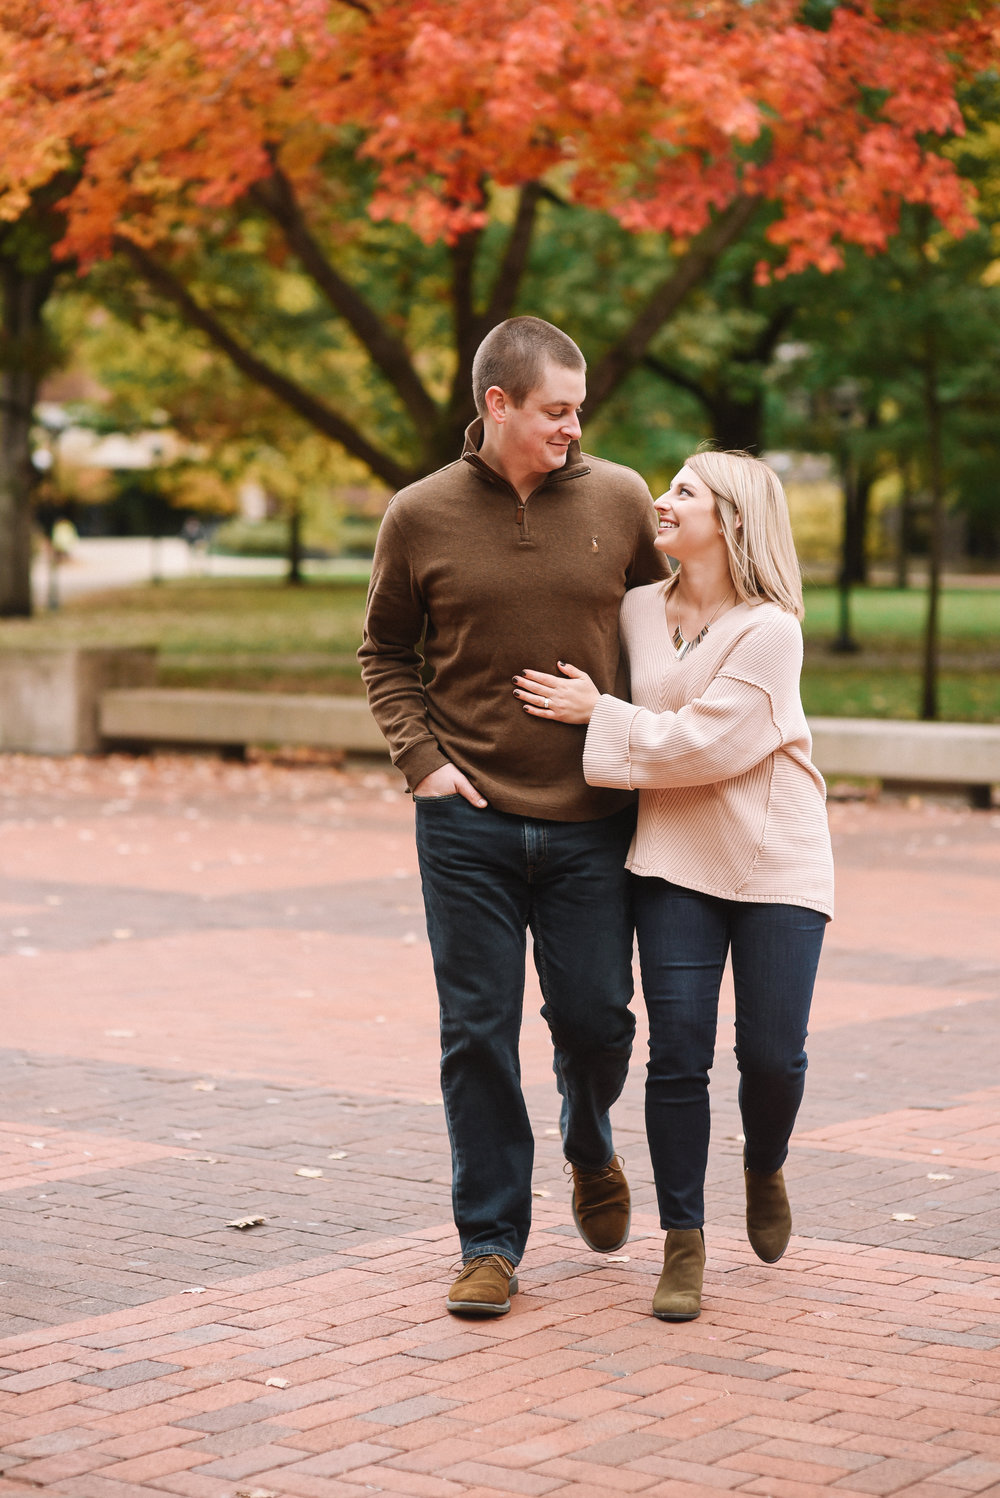 Law_Quad_Ann_Arbor_Engagement_Photos-16.jpg